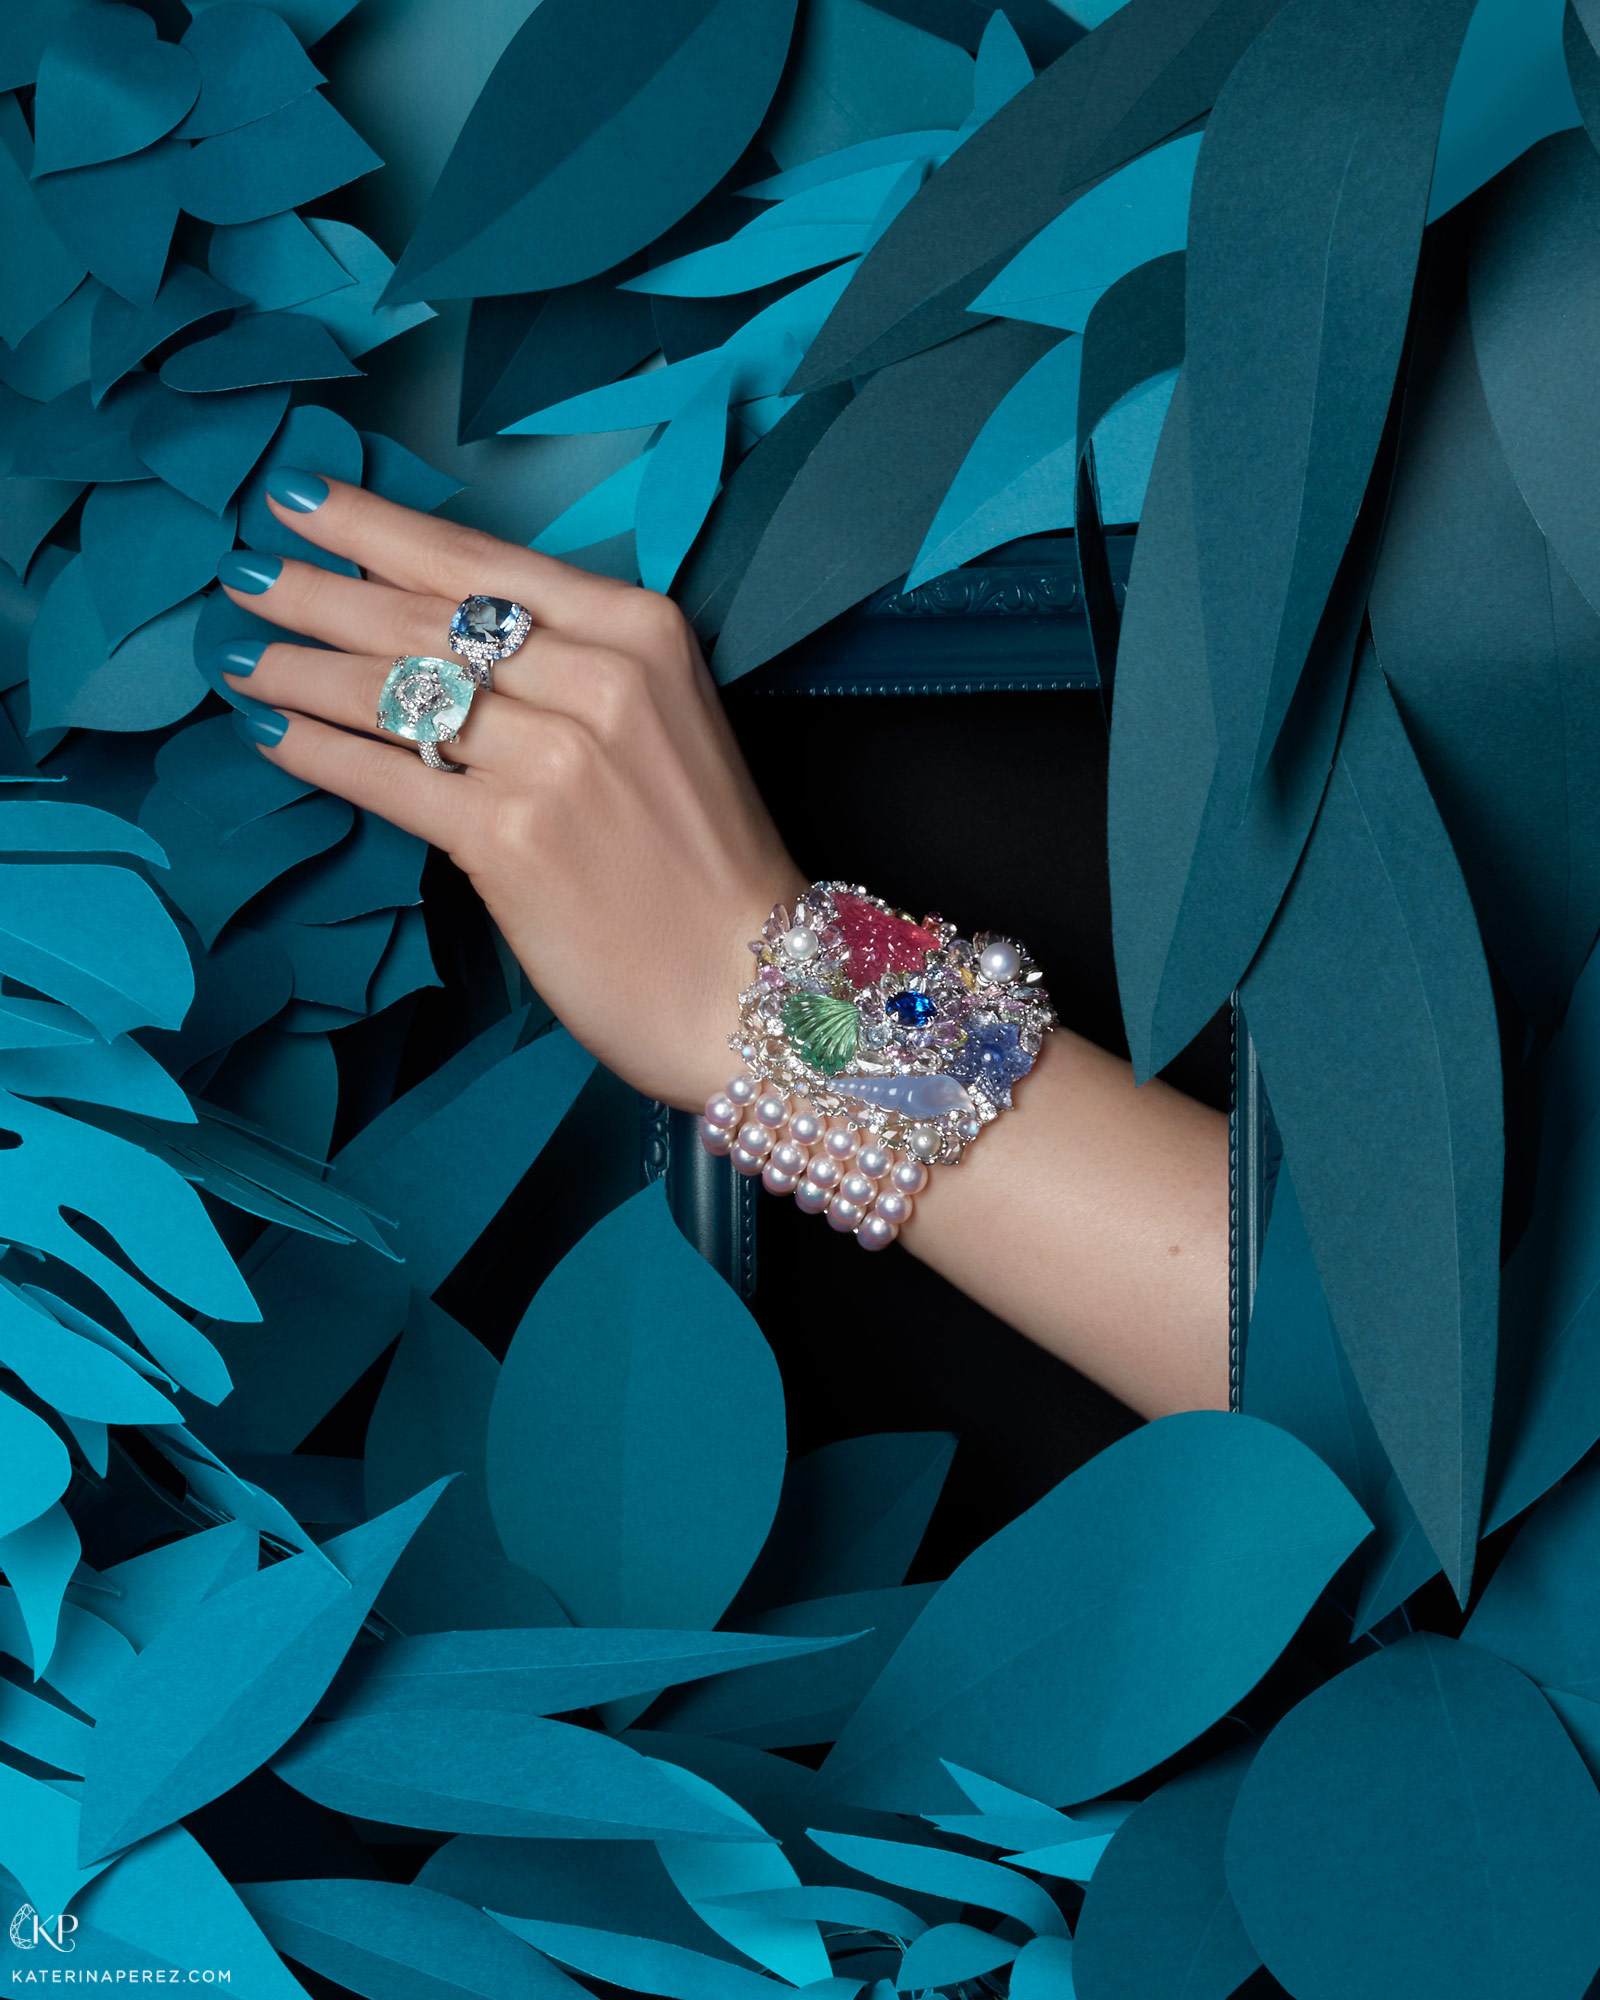 Boghossian ring with 2.51 cts diamond inlaid into Paraiba tourmaline; Martin Katz ring with 10.95 cts Cushion-cut sapphire and diamond set in platinum; Anna Hu Siren Aria bracelet with pearls, sapphires, tourmalines, chalcedony, moonstone and diamonds